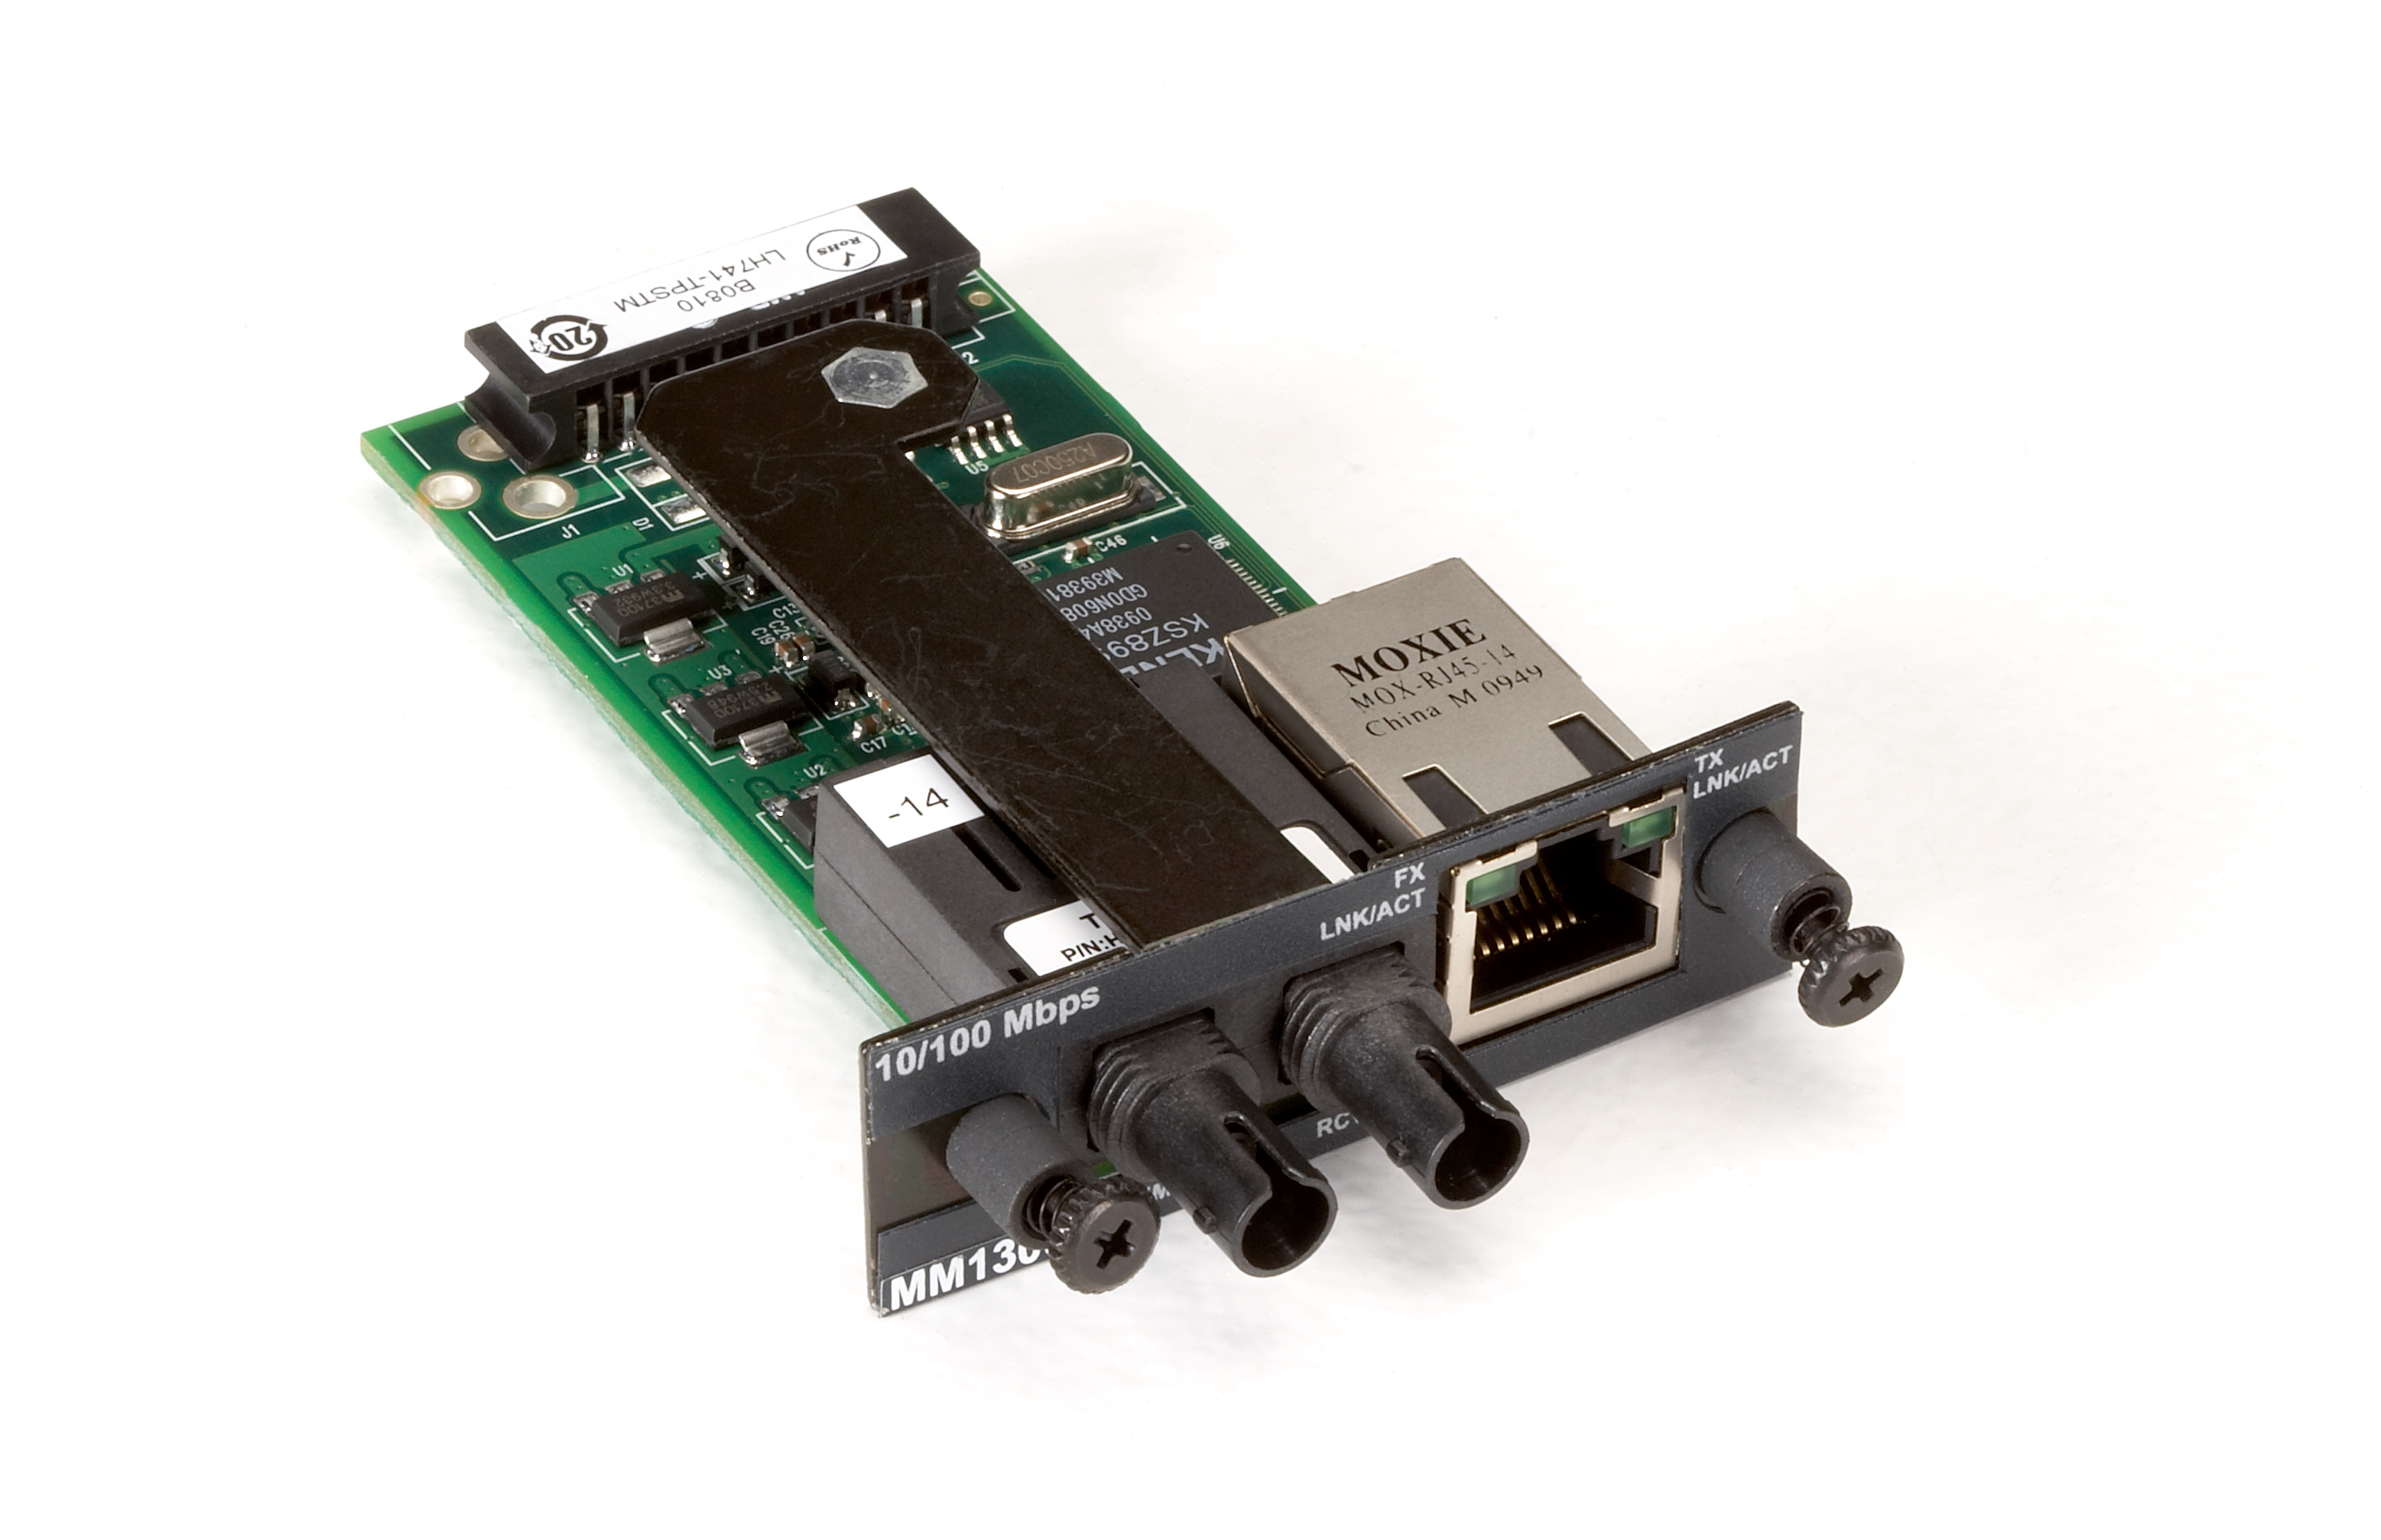 Media Converter Fast Ethernet Multimode 1310nm 2km St Black Box Unpowered Components Also In Circuit Without Risk Of Damaging Them Additional Product Image